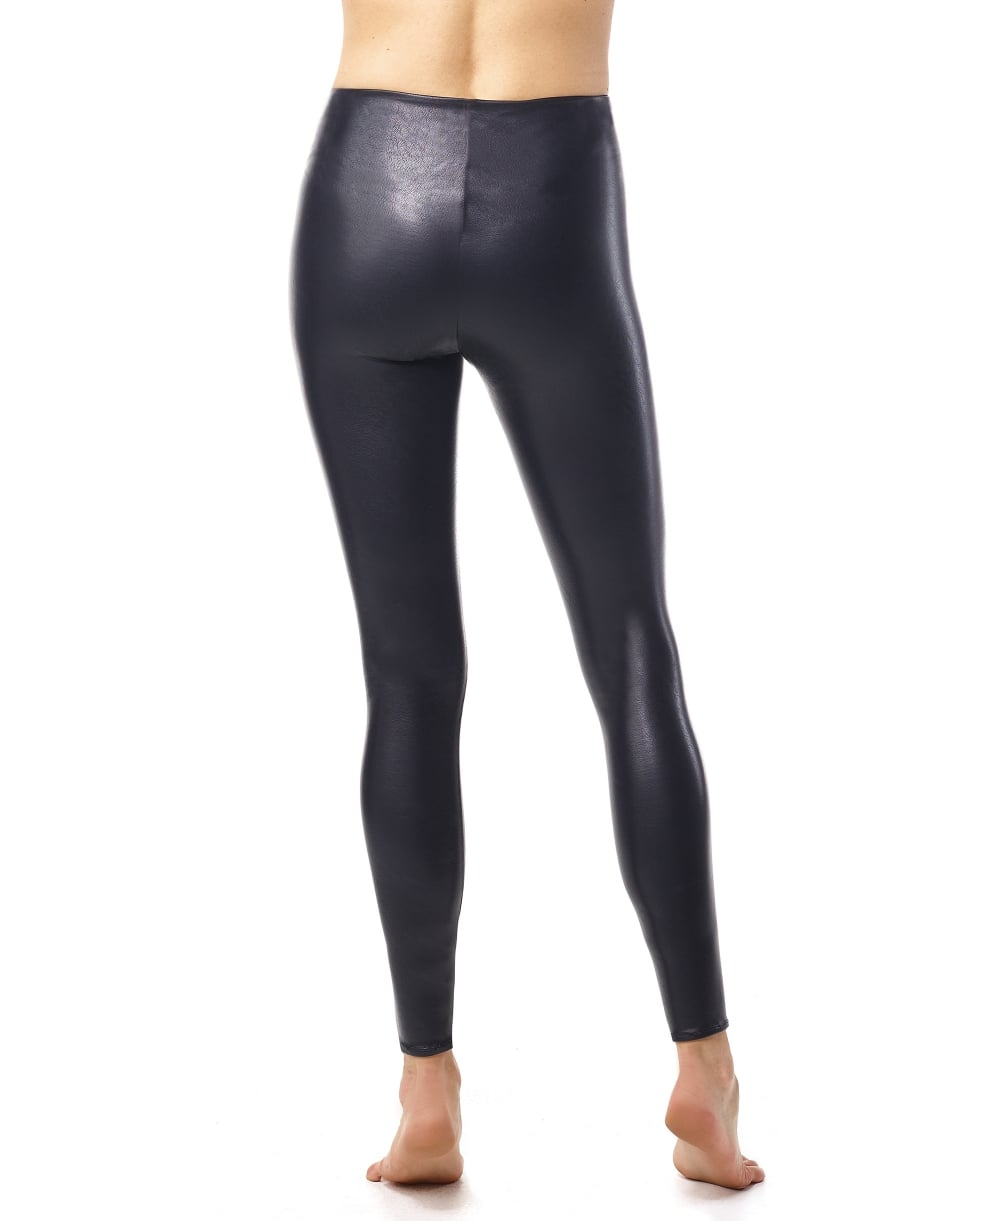 76a6b720bae69 Commando Perfect Control Faux Leather Legging - Leggings from luxury ...